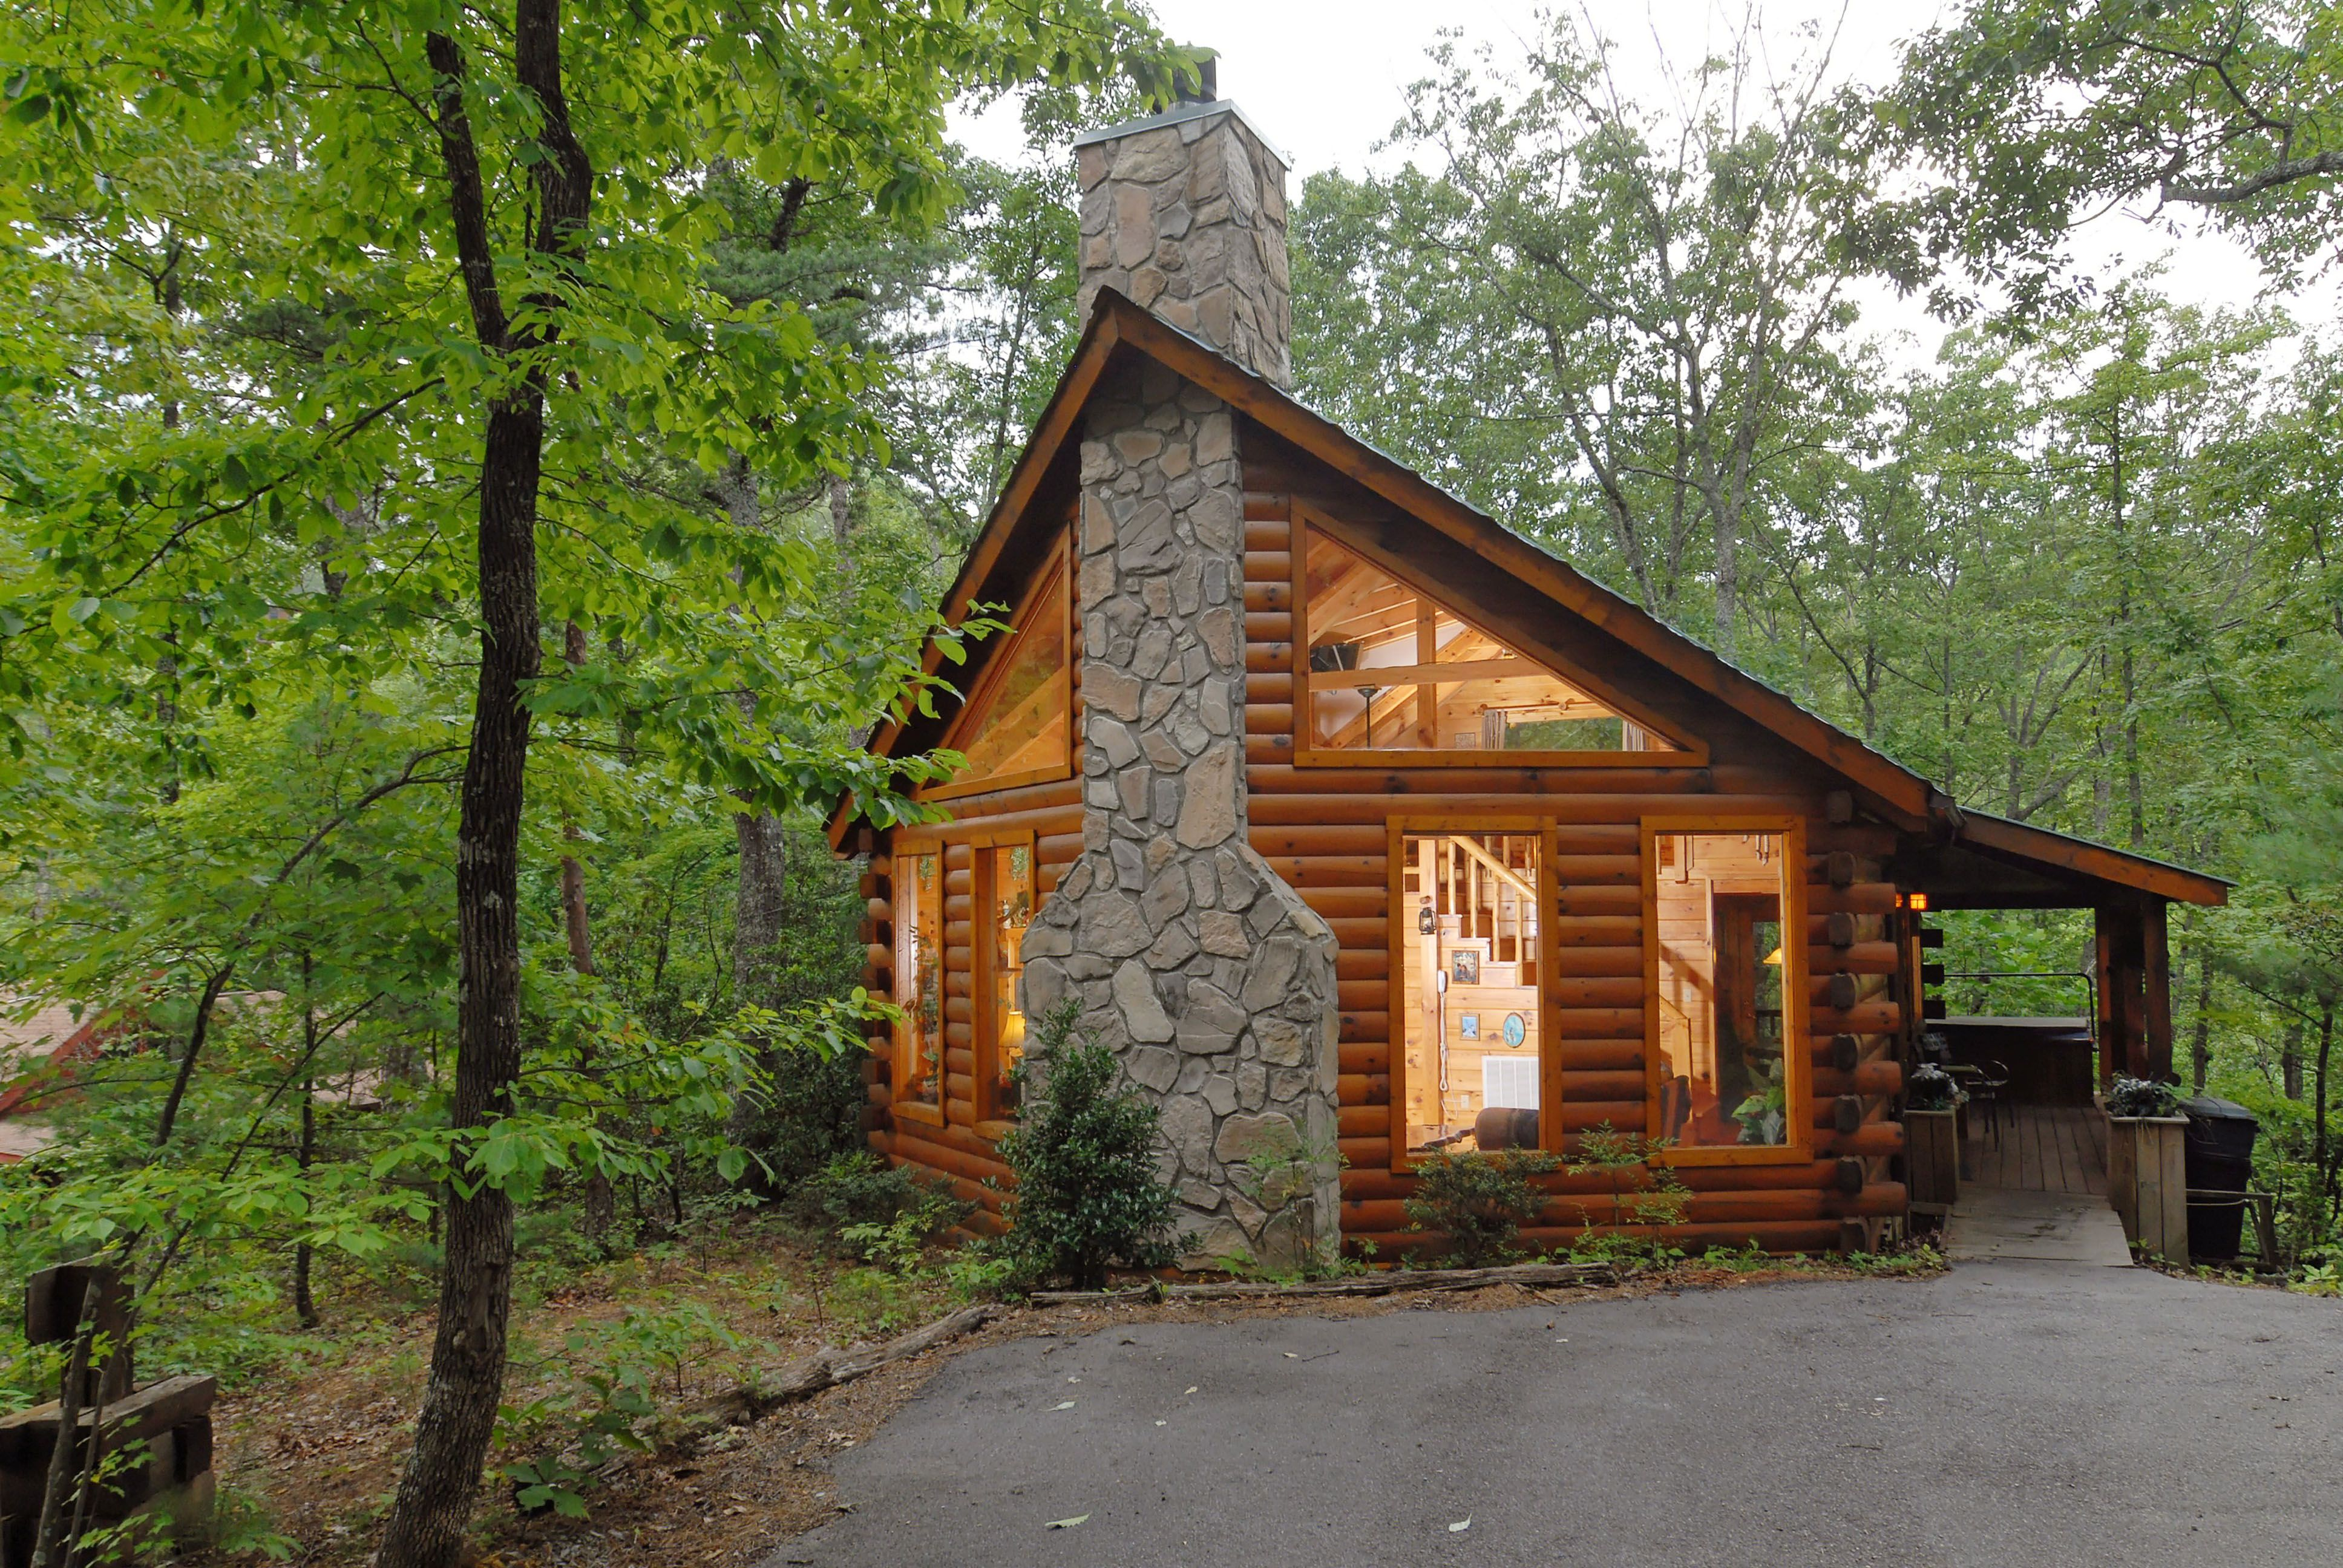 Romantic Cabins In The Woods Afternoon Delight Is A Newer Log Cabin Nestled Deep In The Woods With Images Secluded Cabin Gatlinburg Cabins Gatlinburg Cabin Rentals